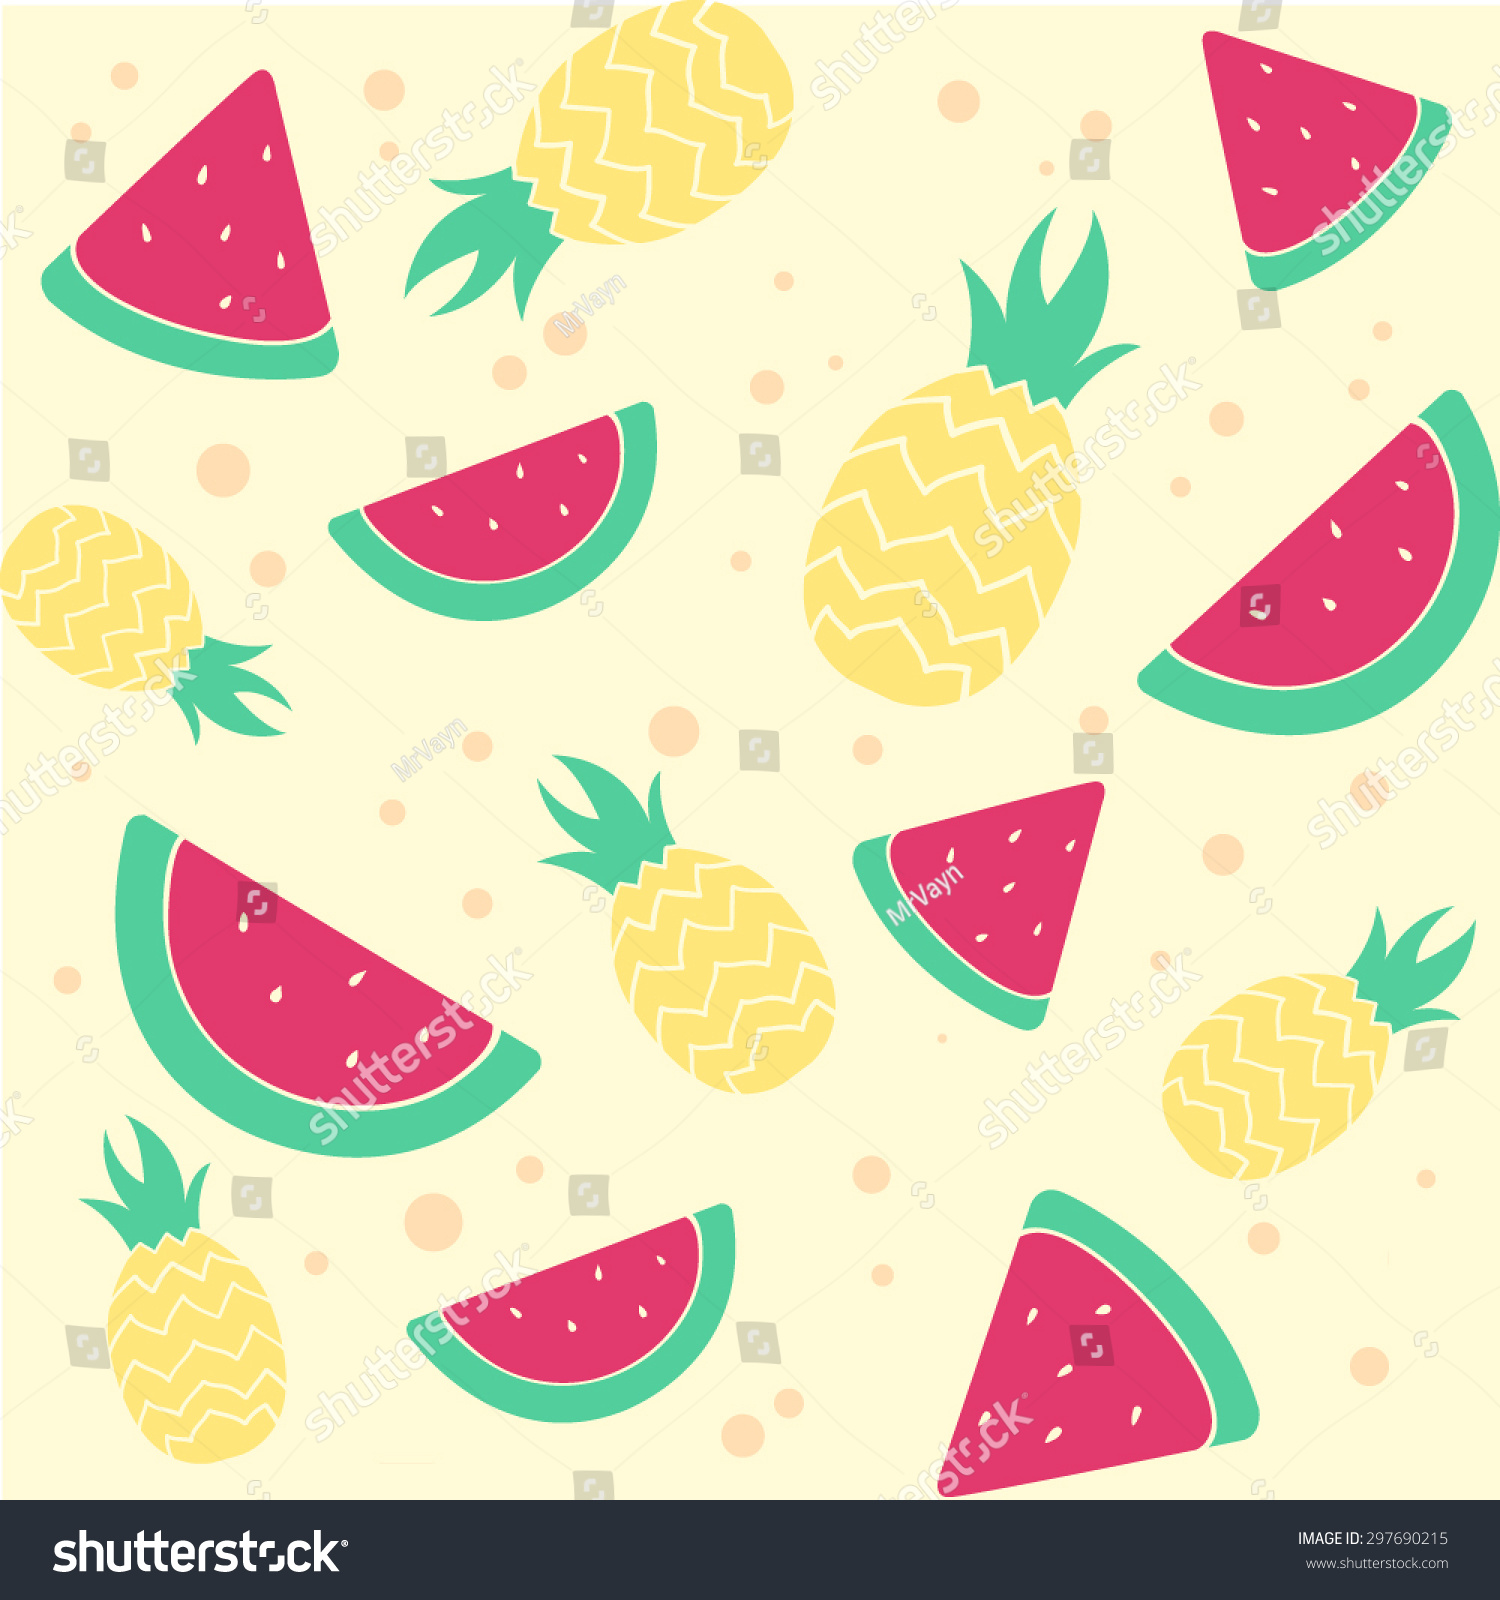 Watermelon and pineapple wallpaper tumblr